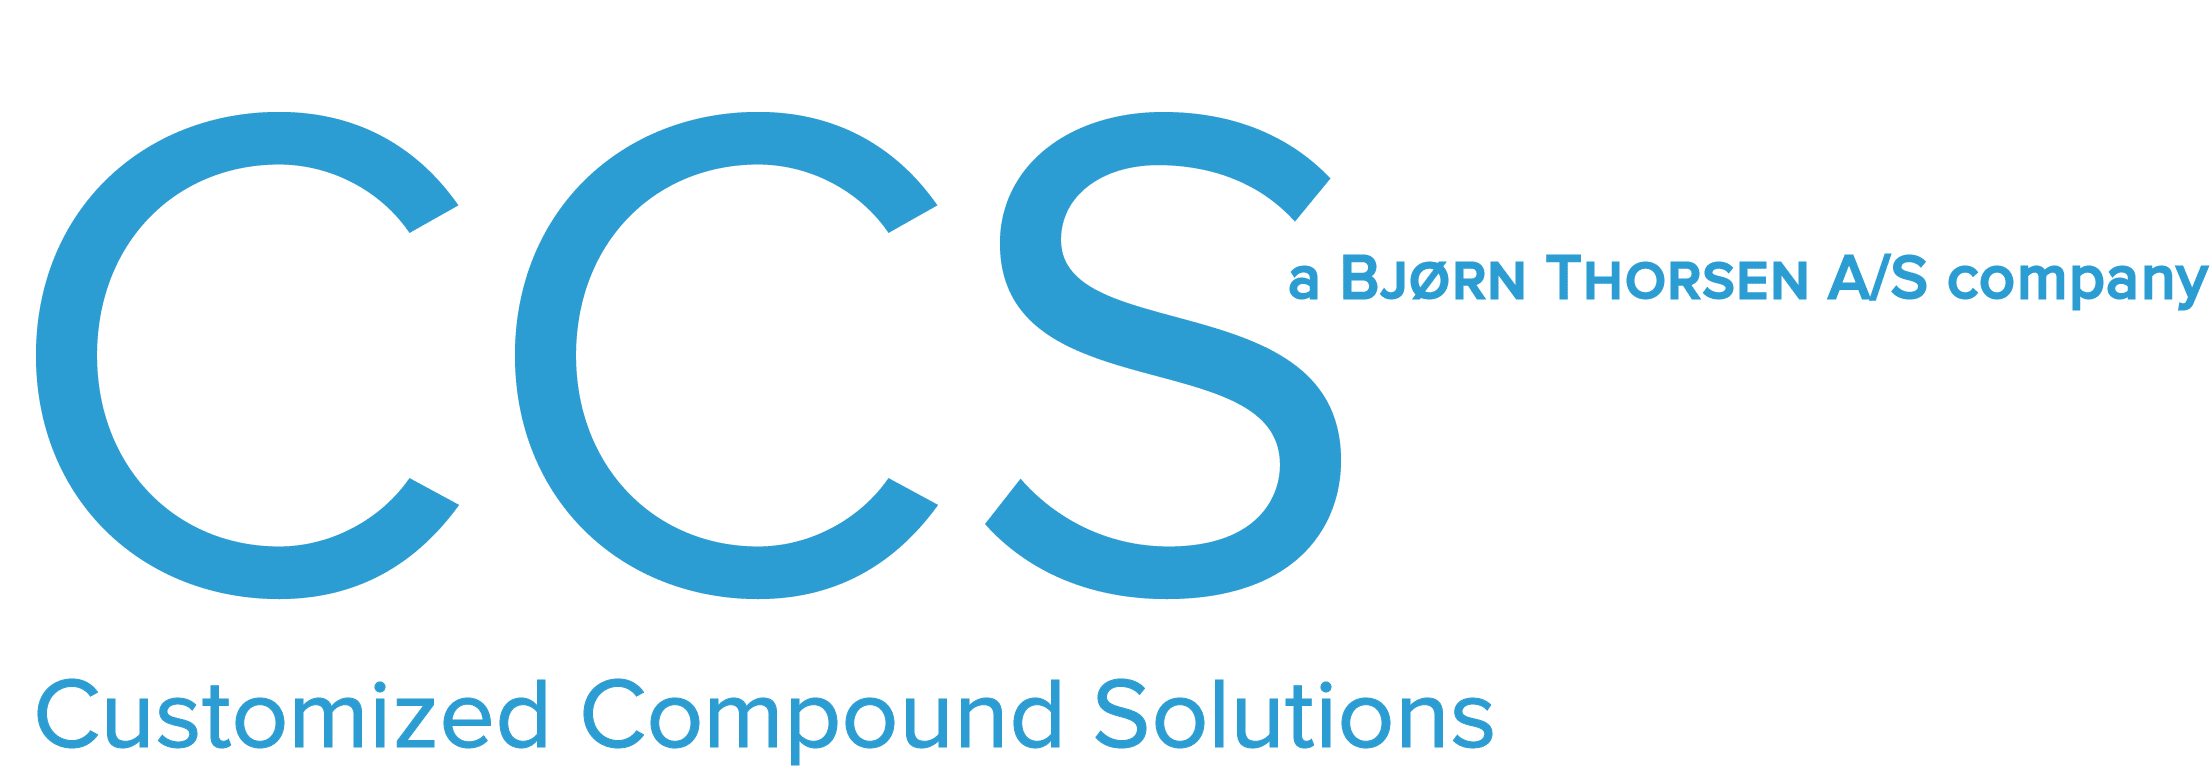 CCS provides sustainable, customized compounds or flexible polymer needs